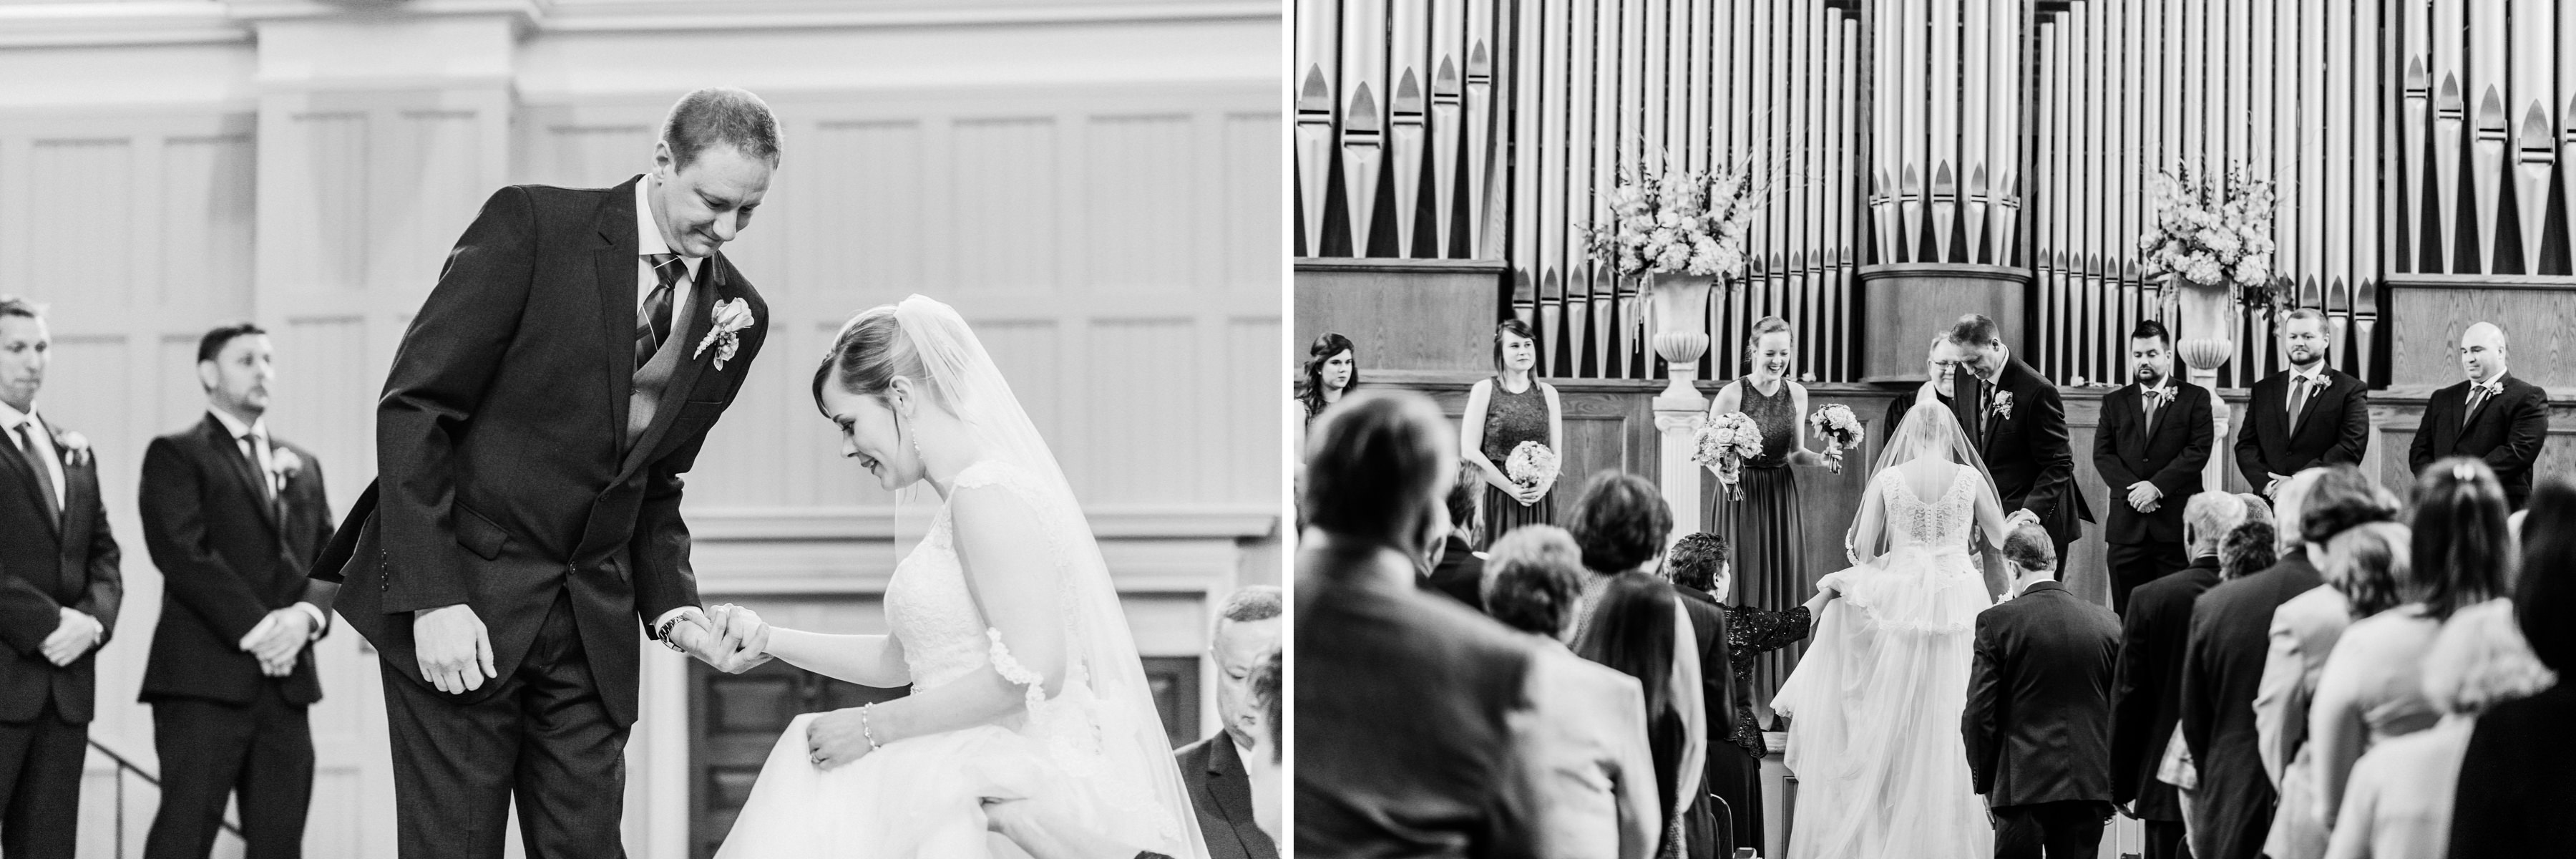 MAULDIN_WEDDING_MONTGOMERY_ALABAMA_WEDDING_PHOTOGRAPHY_61